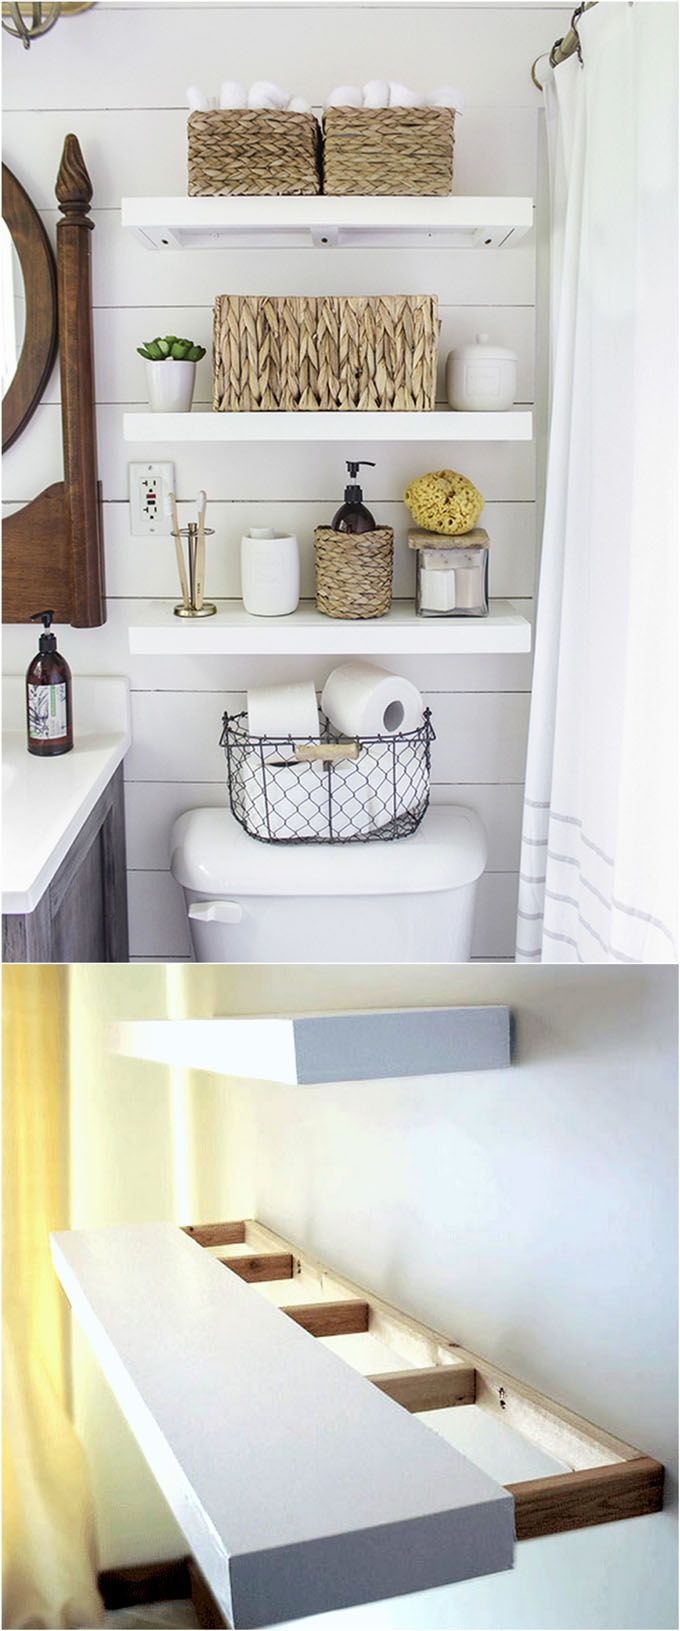 Bathroom wall shelf - 16 Easy And Stylish Diy Floating Shelves Wall Shelves